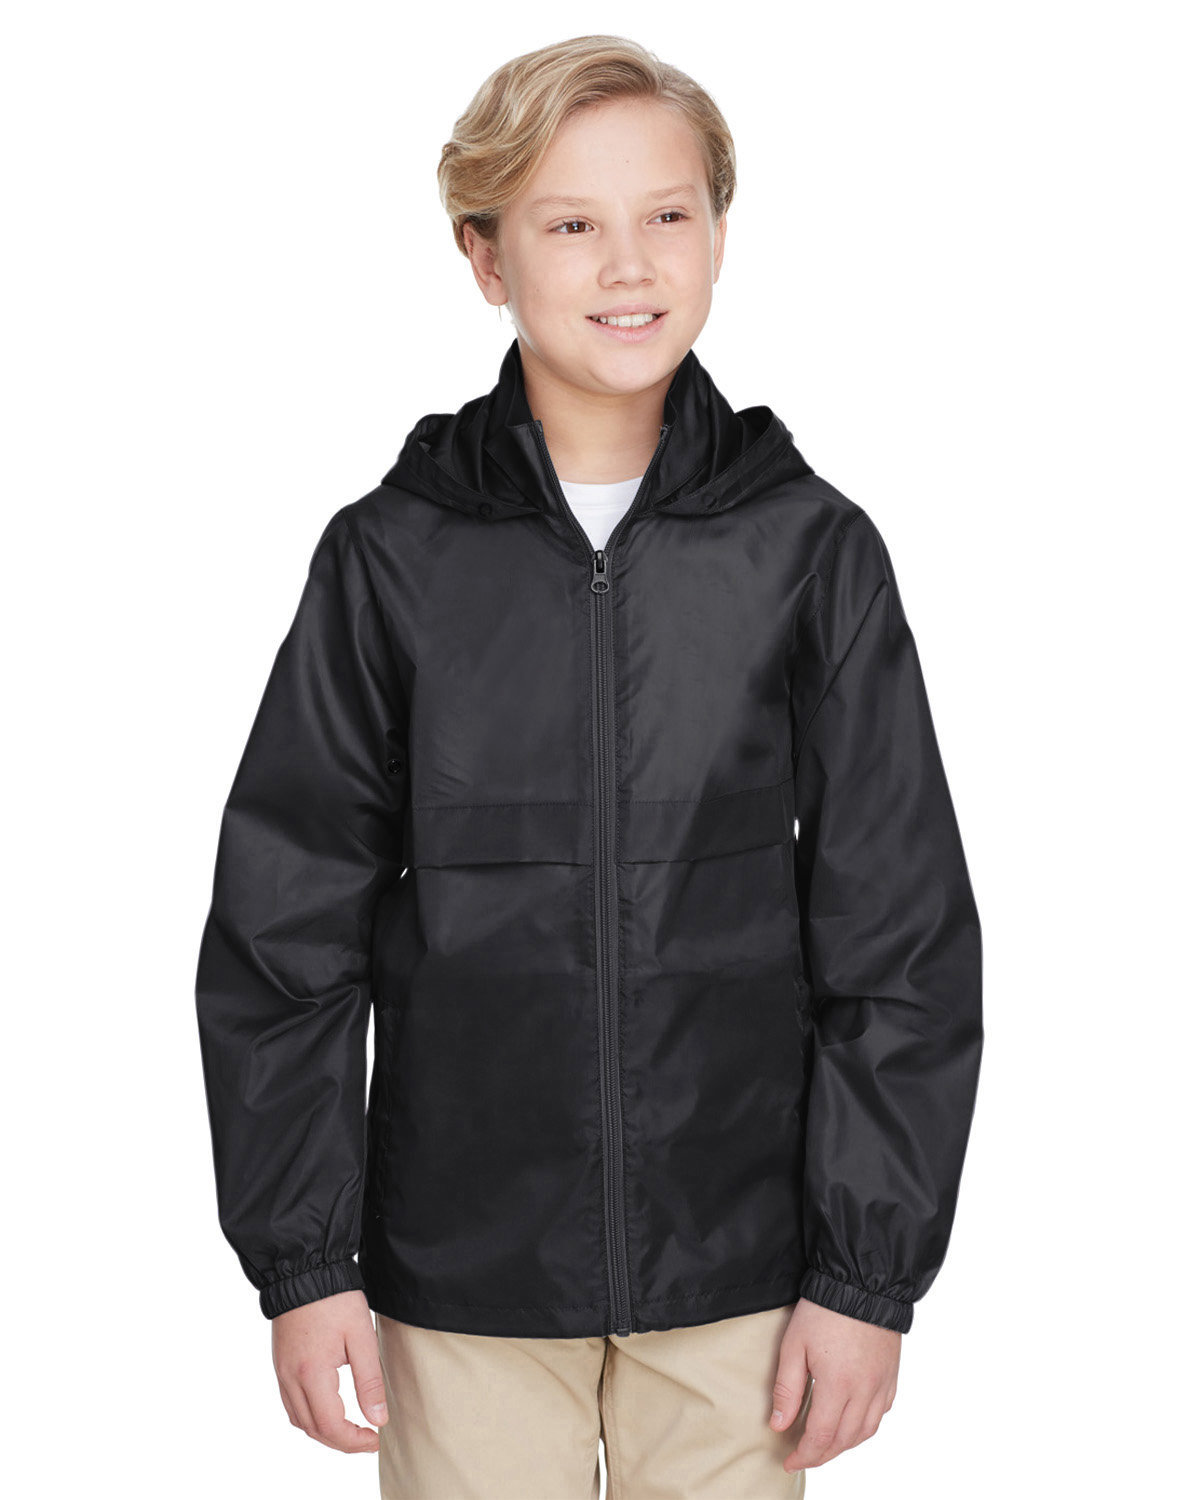 Team 365 Youth Zone Protect Lightweight Jacket BLACK